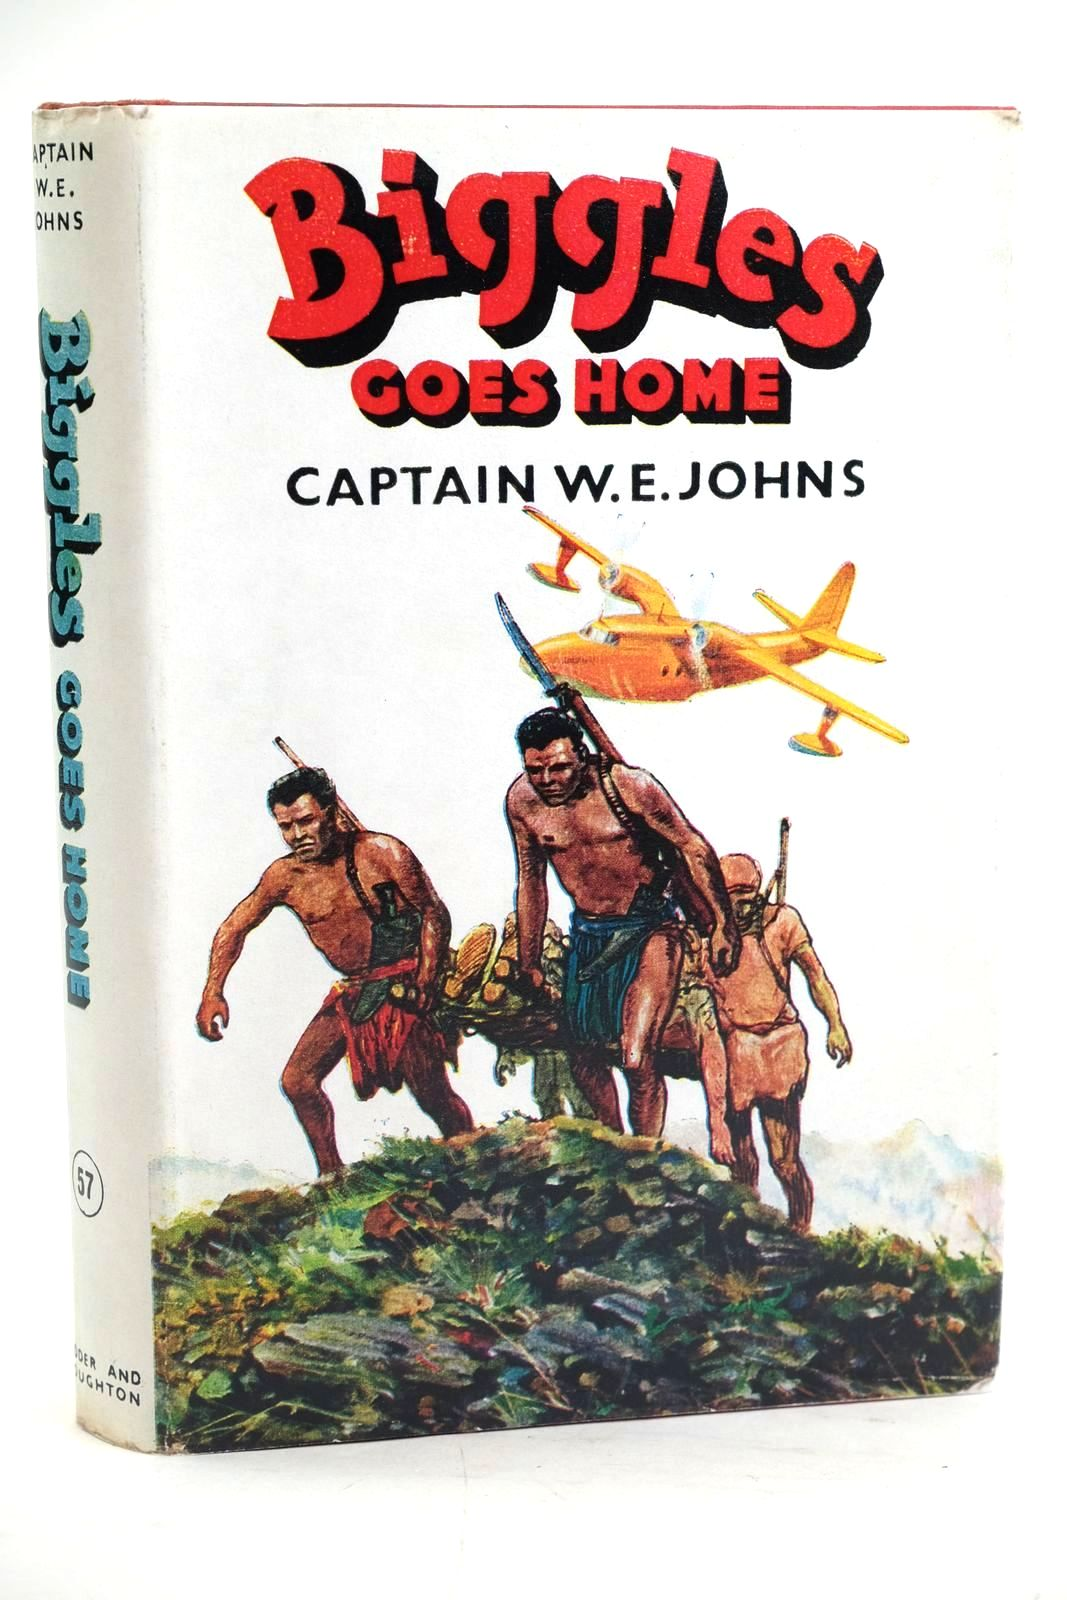 Photo of BIGGLES GOES HOME written by Johns, W.E. illustrated by Stead,  published by Hodder & Stoughton (STOCK CODE: 1319738)  for sale by Stella & Rose's Books